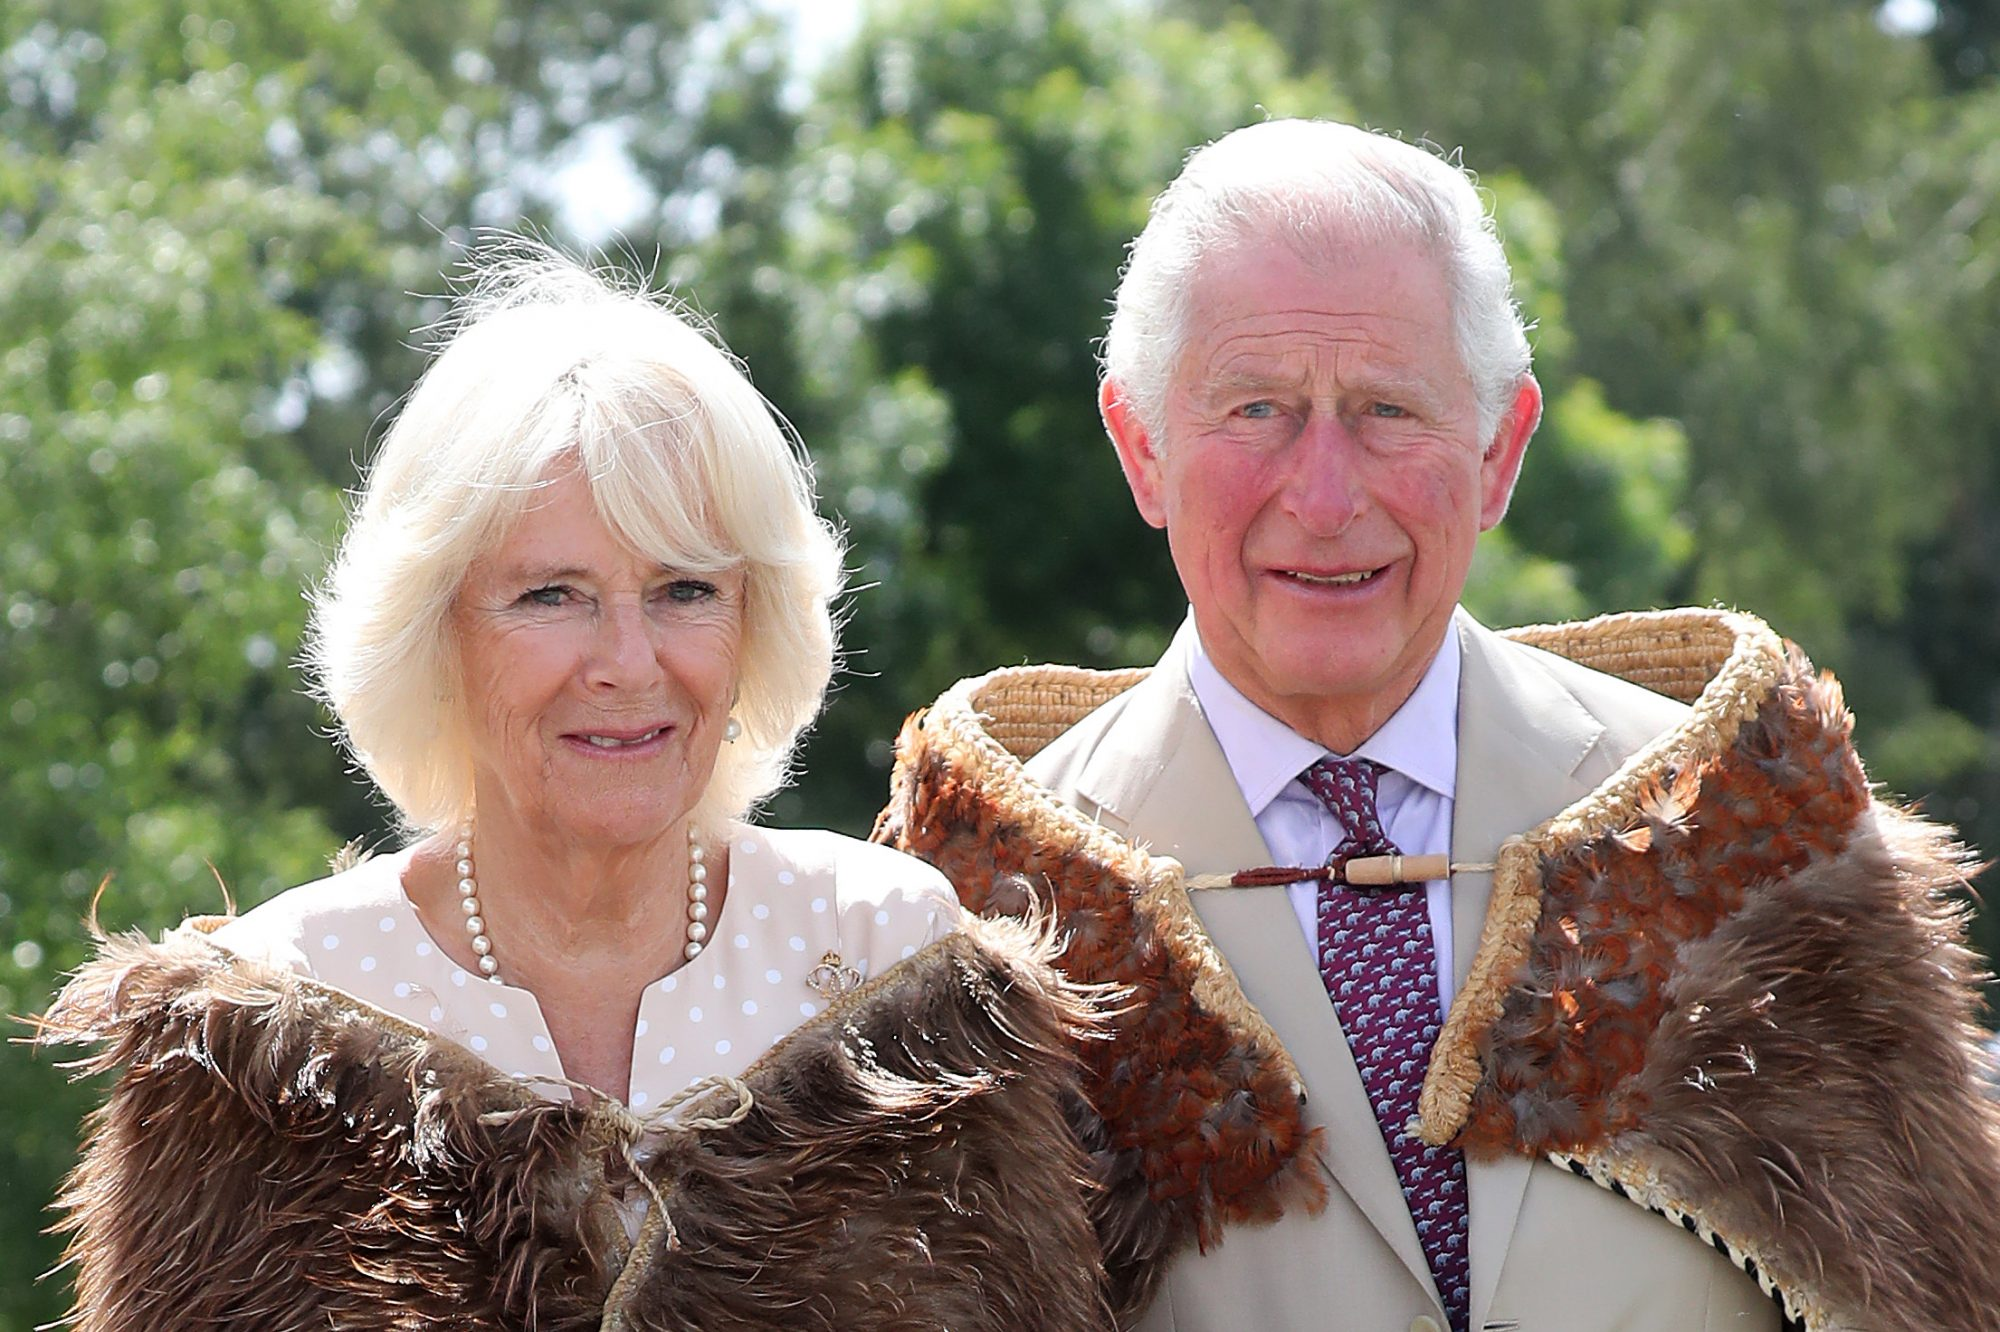 prince-of-wales-and-camilla.jpg